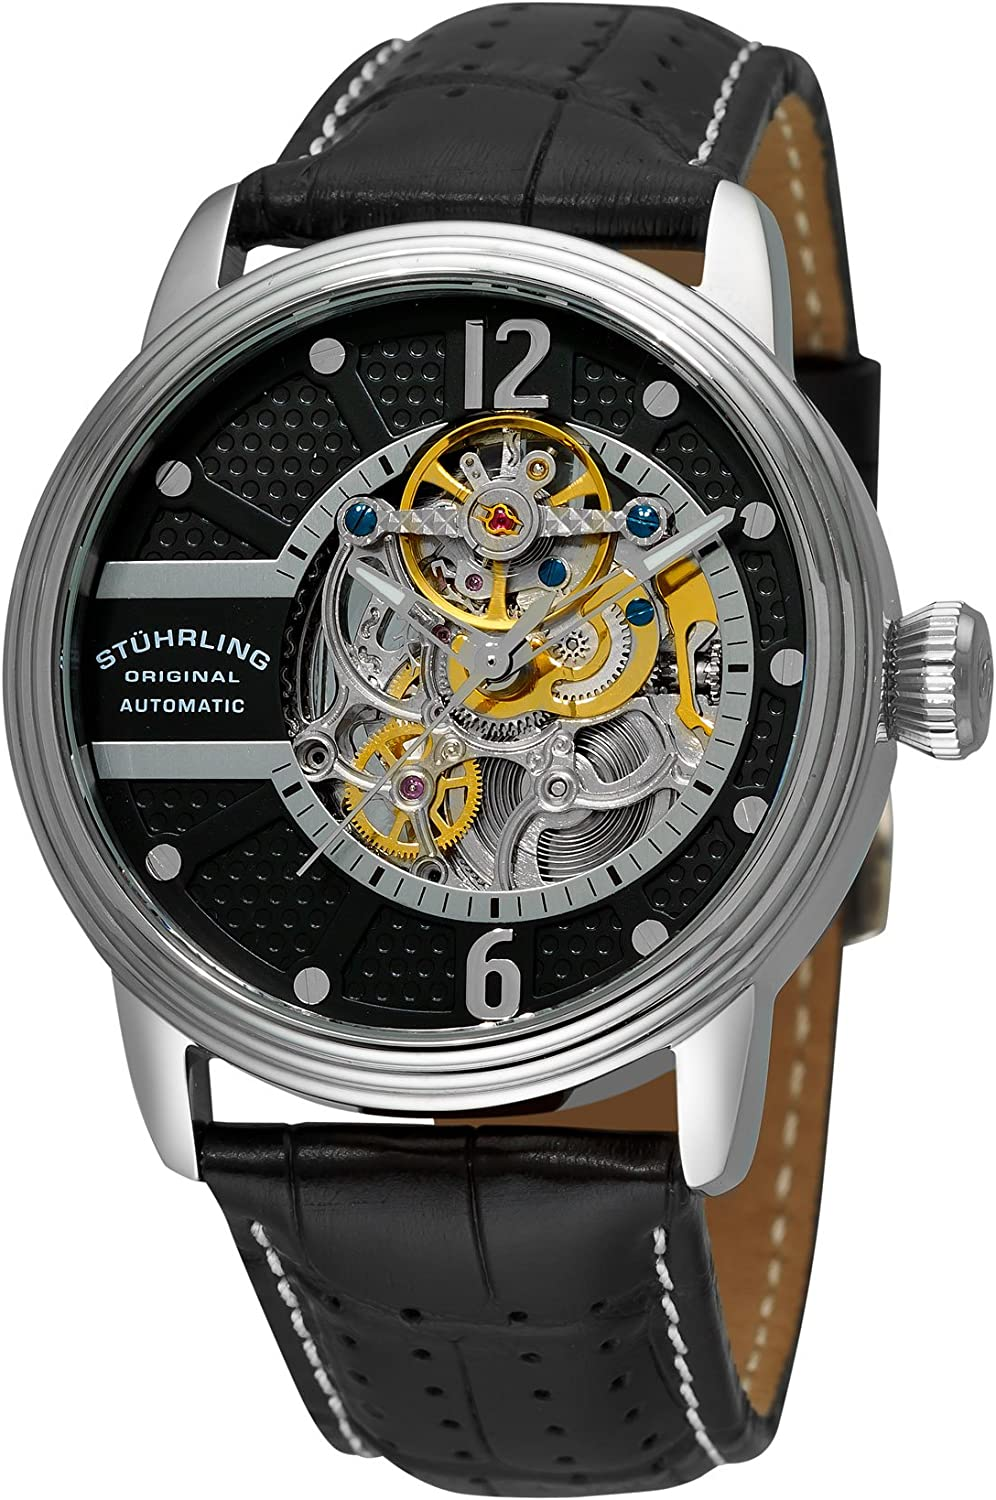 Stuhrling Original Mens Watch – Automatic Self Winding Dress Watch – Skeleton Watches for Men – Leather Watch Strap Mechanical Watch Analog Watch for Men